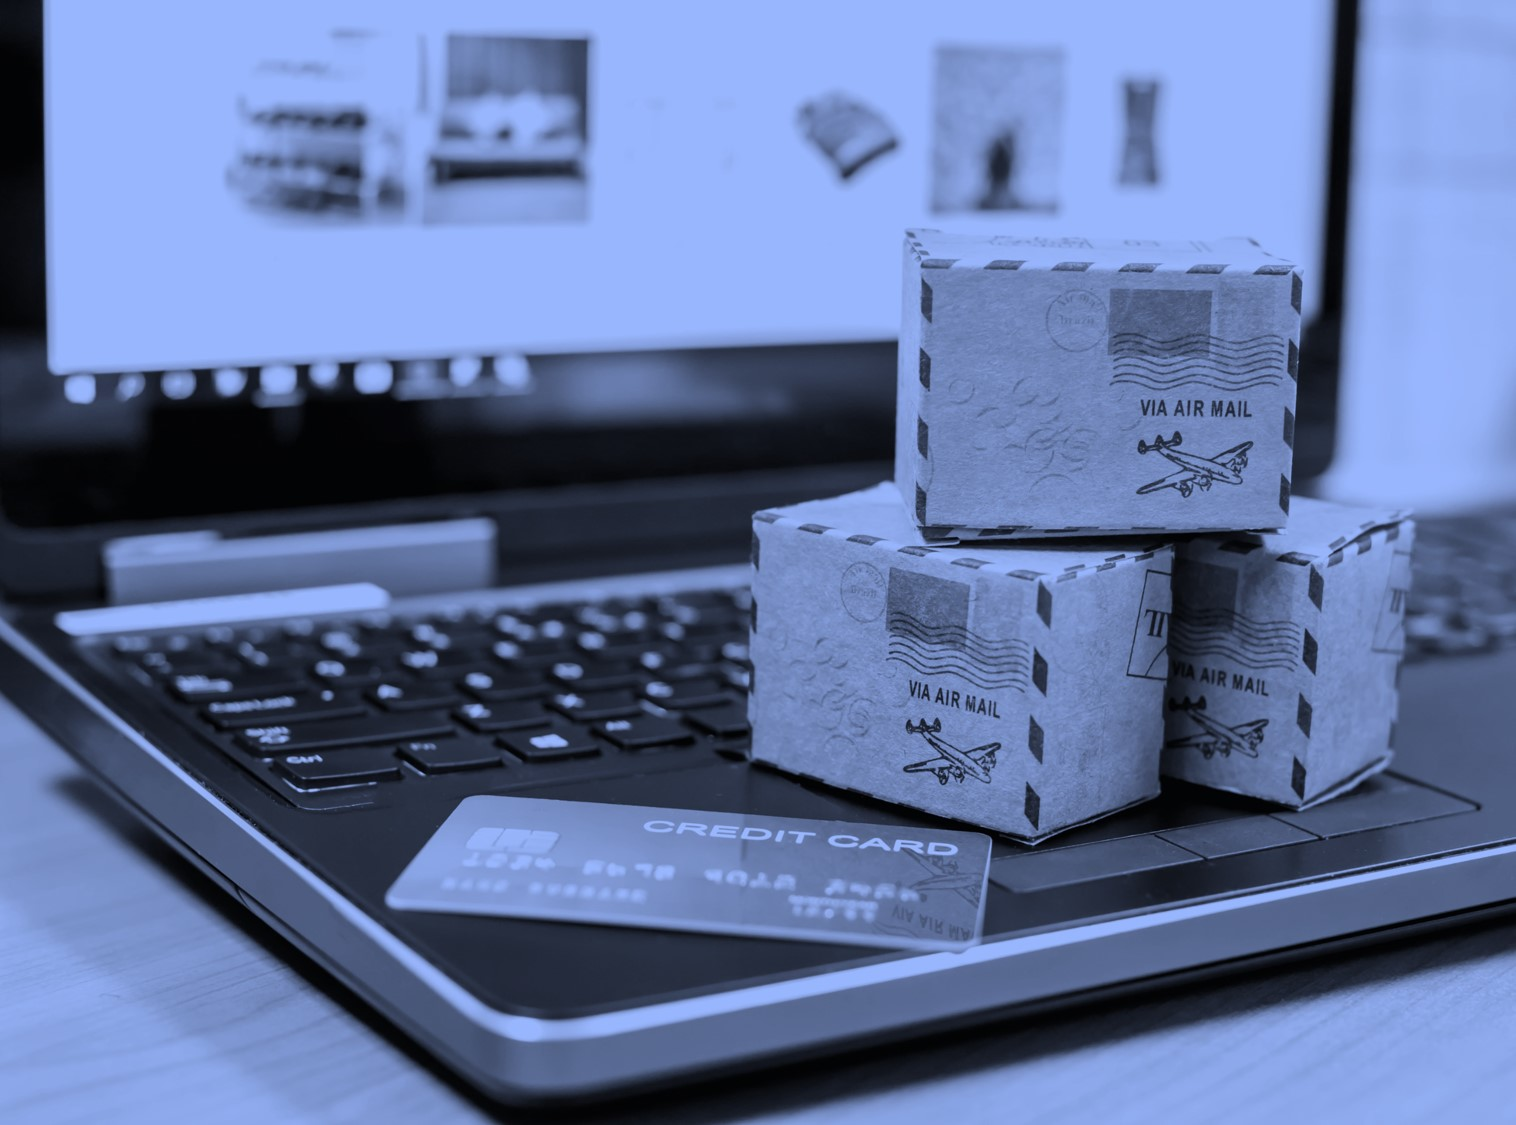 10 Tips for Secure Online Shopping on Cyber Monday